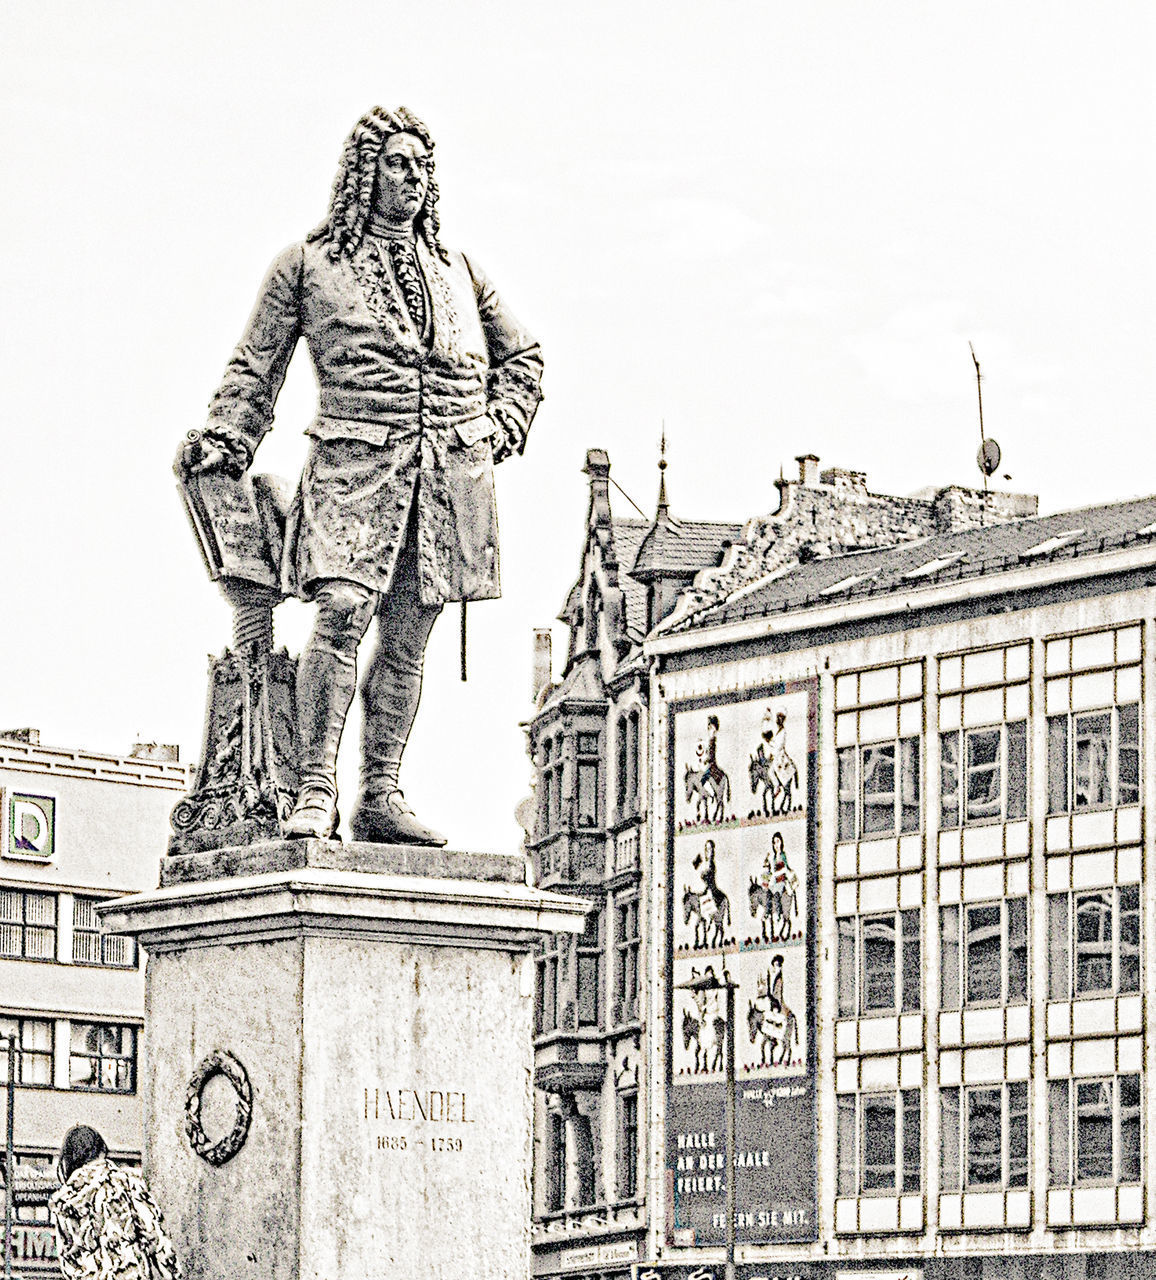 LOW ANGLE VIEW OF STATUE OF A BUILDING